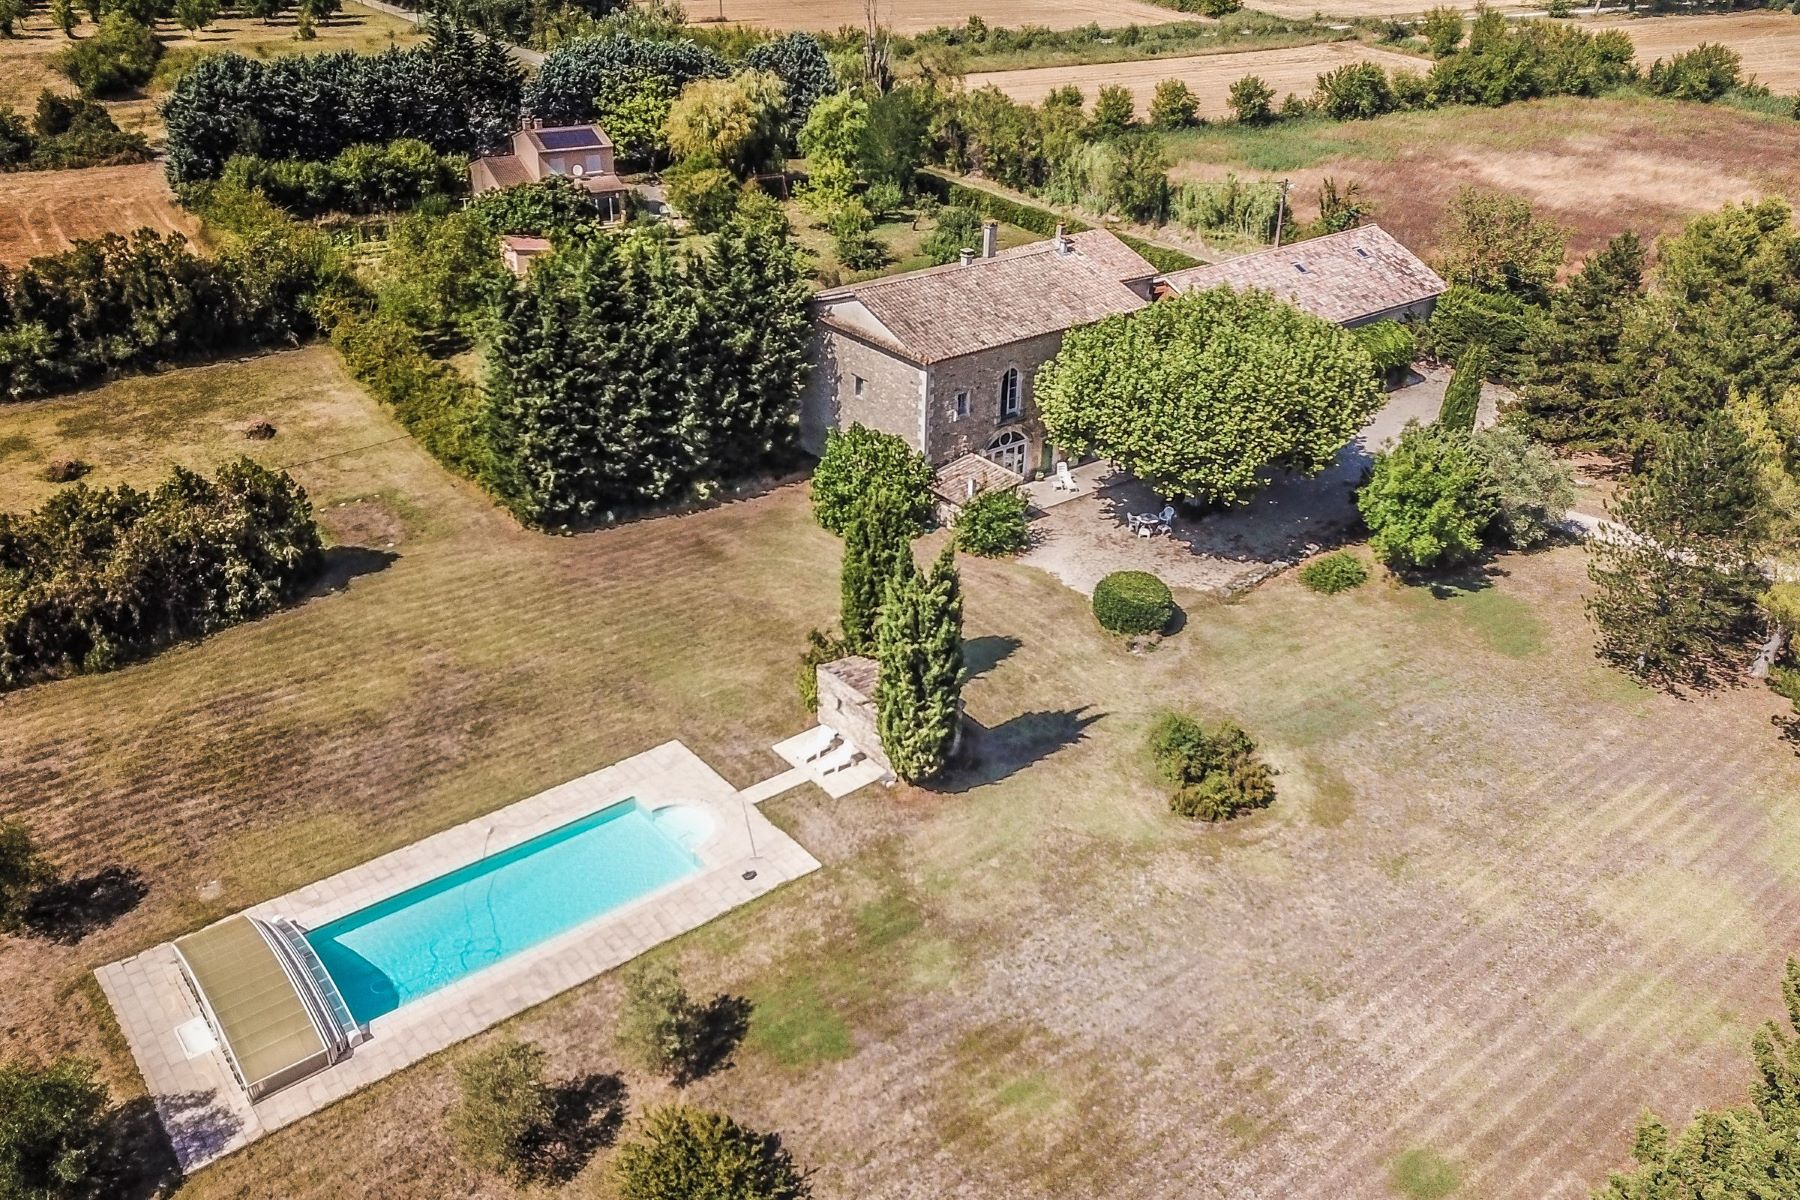 Single Family Homes por un Venta en a farm with potential Other Provence-Alpes-Cote D'Azur, Provincia - Alpes - Costa Azul 84800 Francia